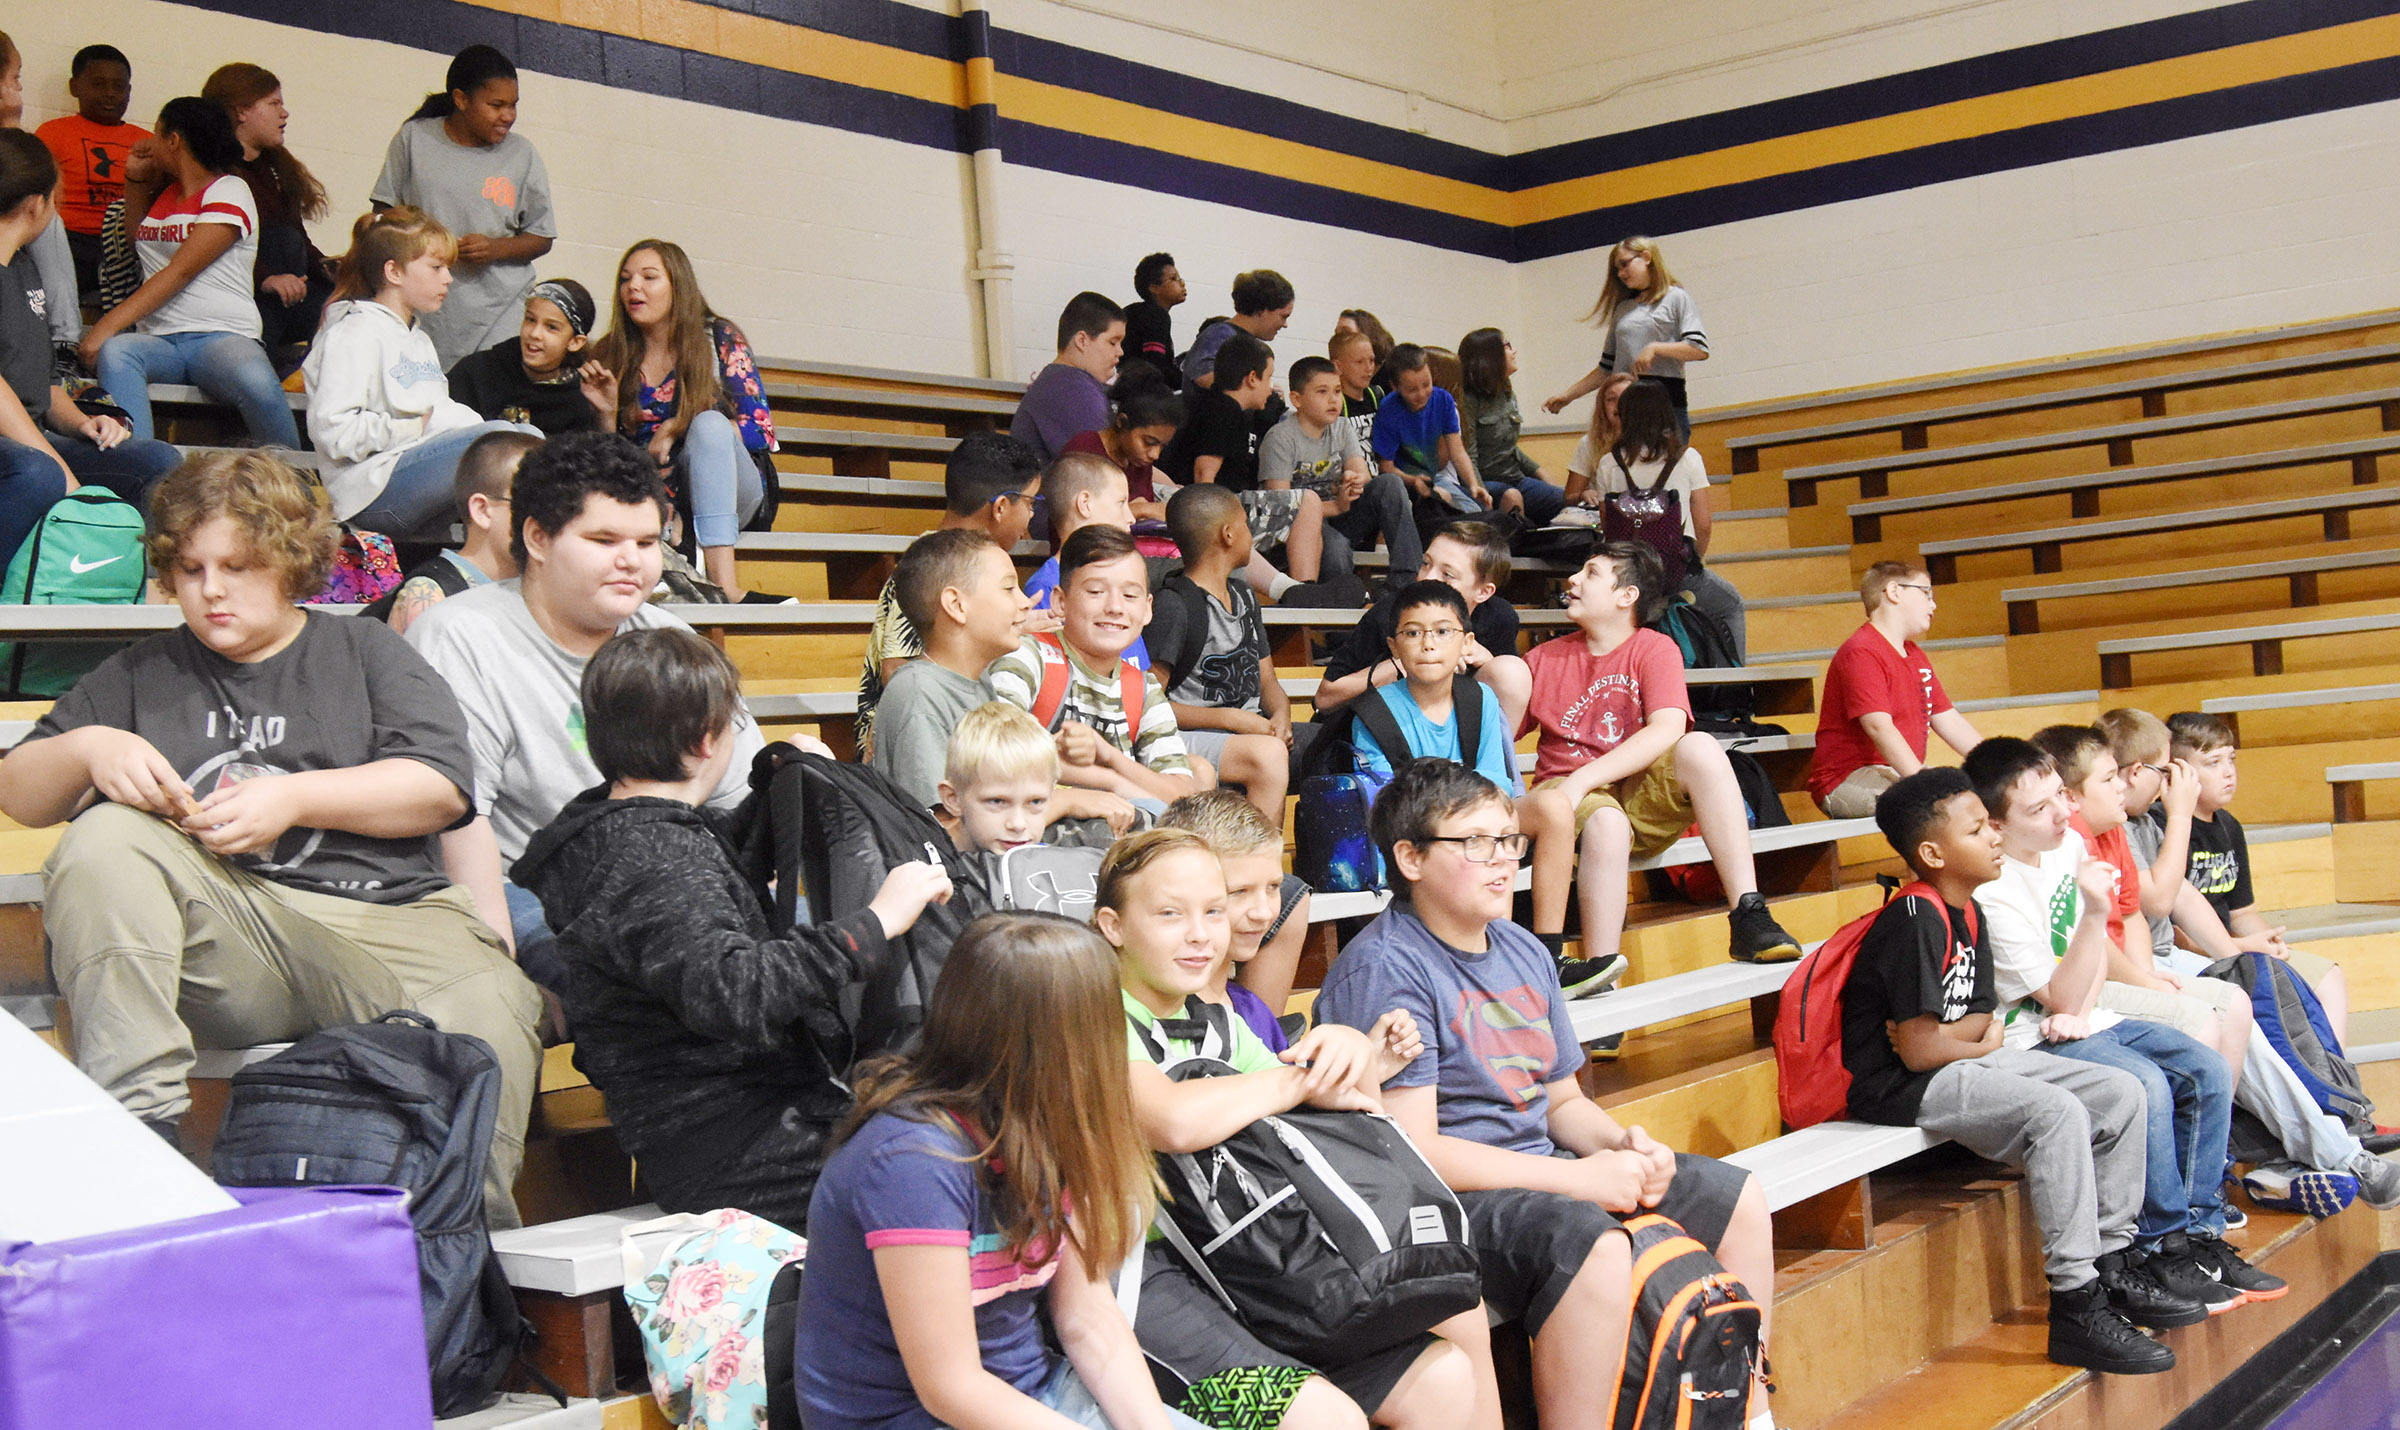 CMS students wait in the gym for the school day to start.